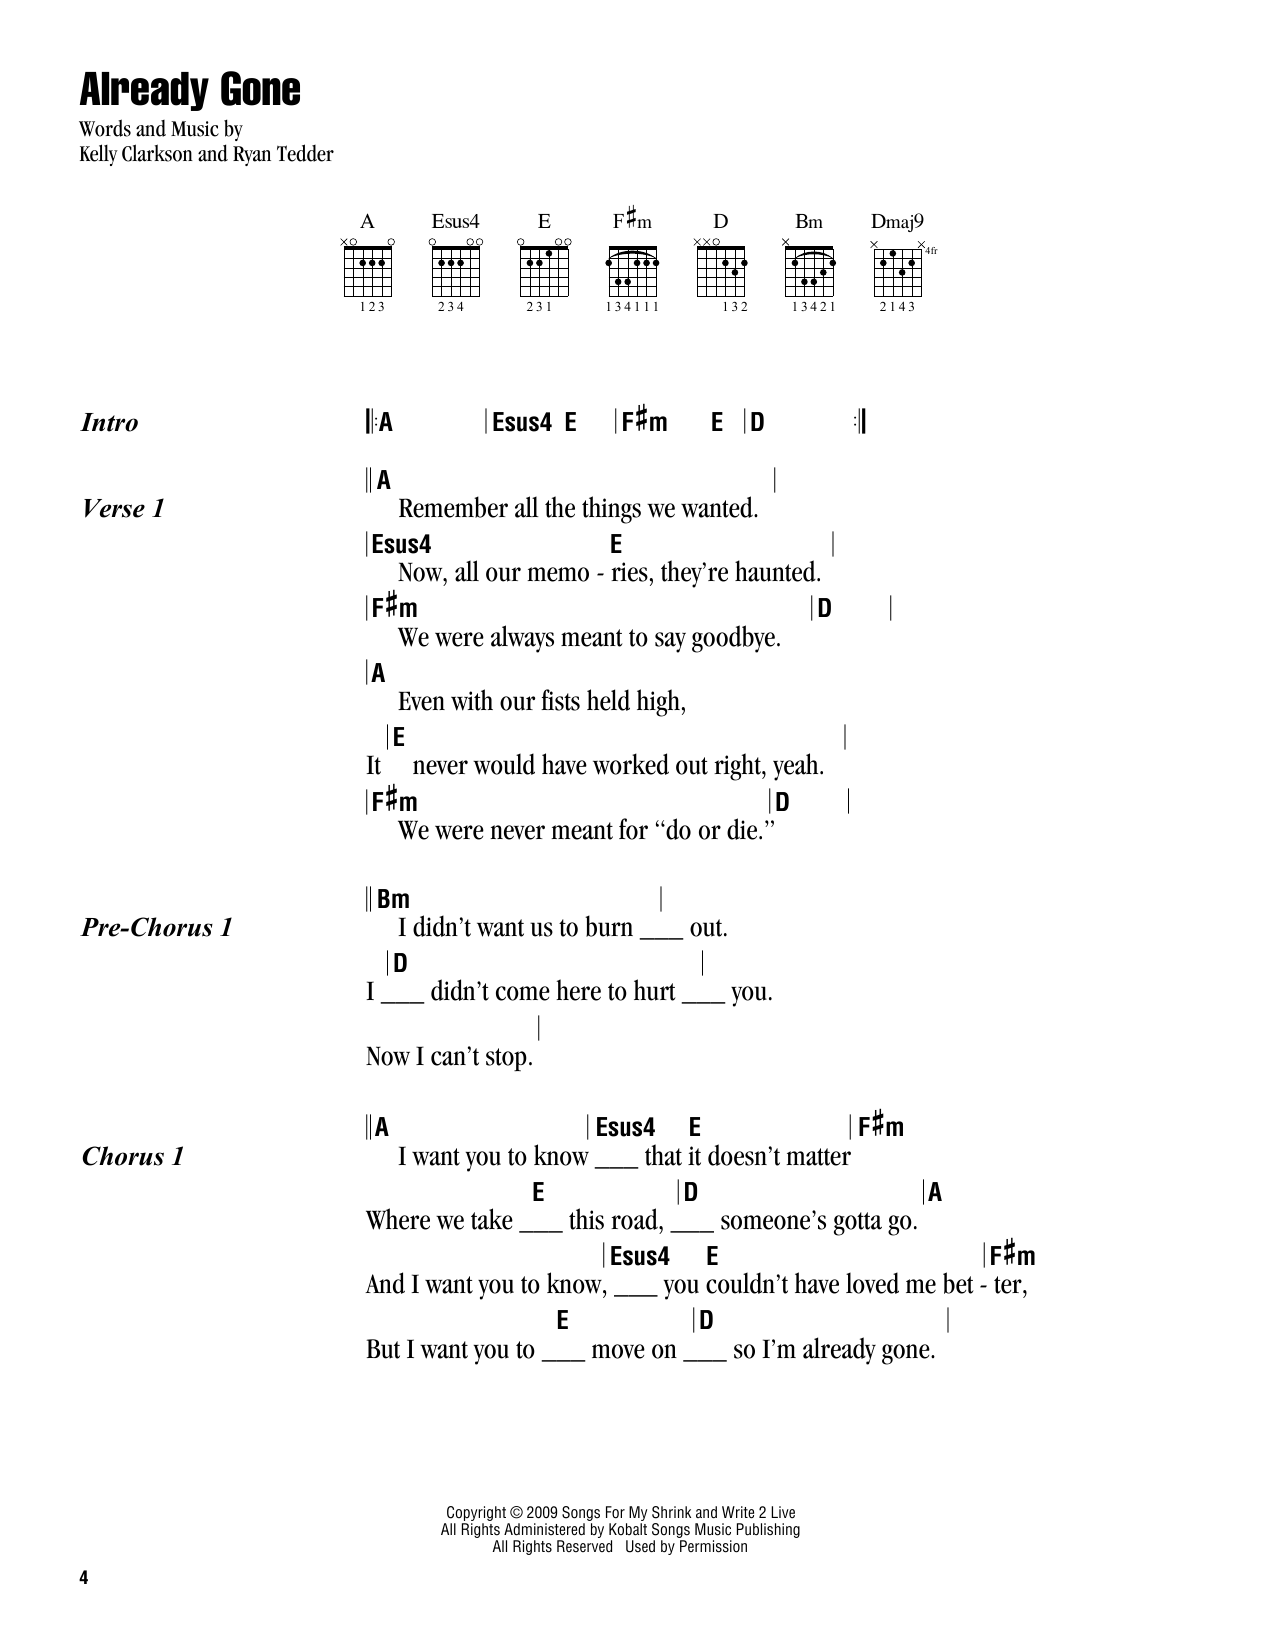 Already gone sheet music direct sheet preview already gone hexwebz Image collections